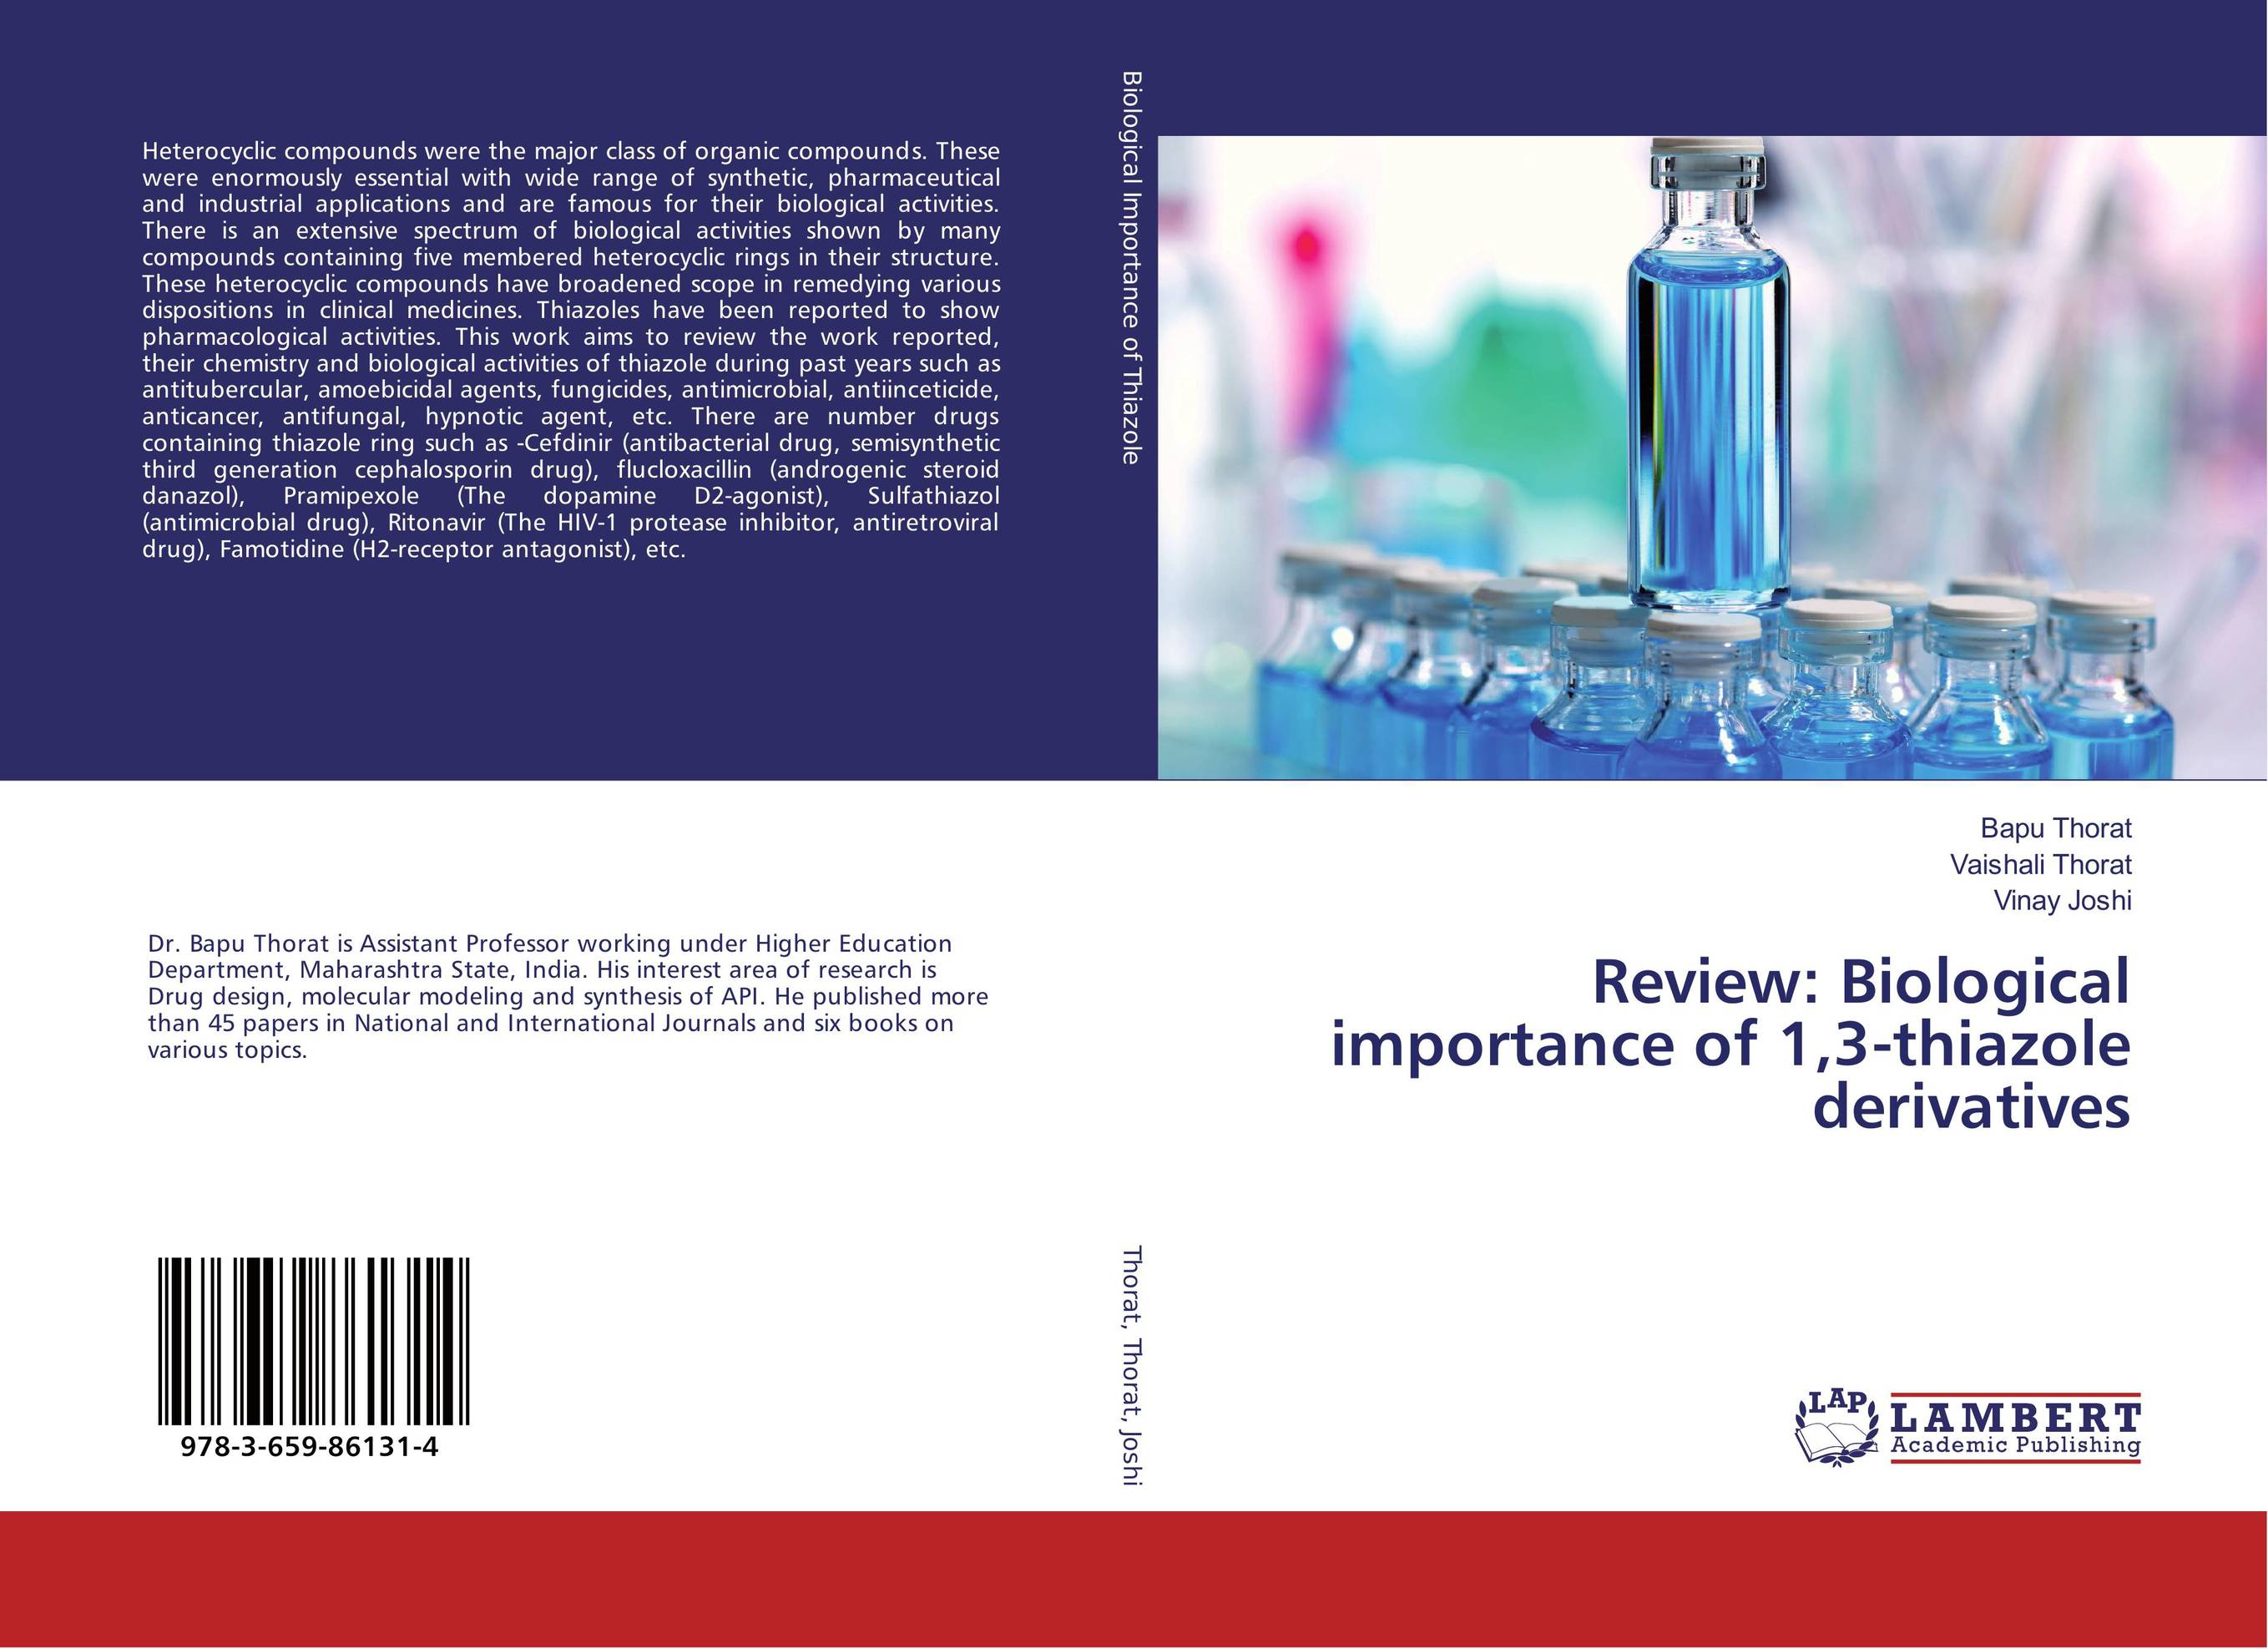 importance of steriochemistry in pharmacy